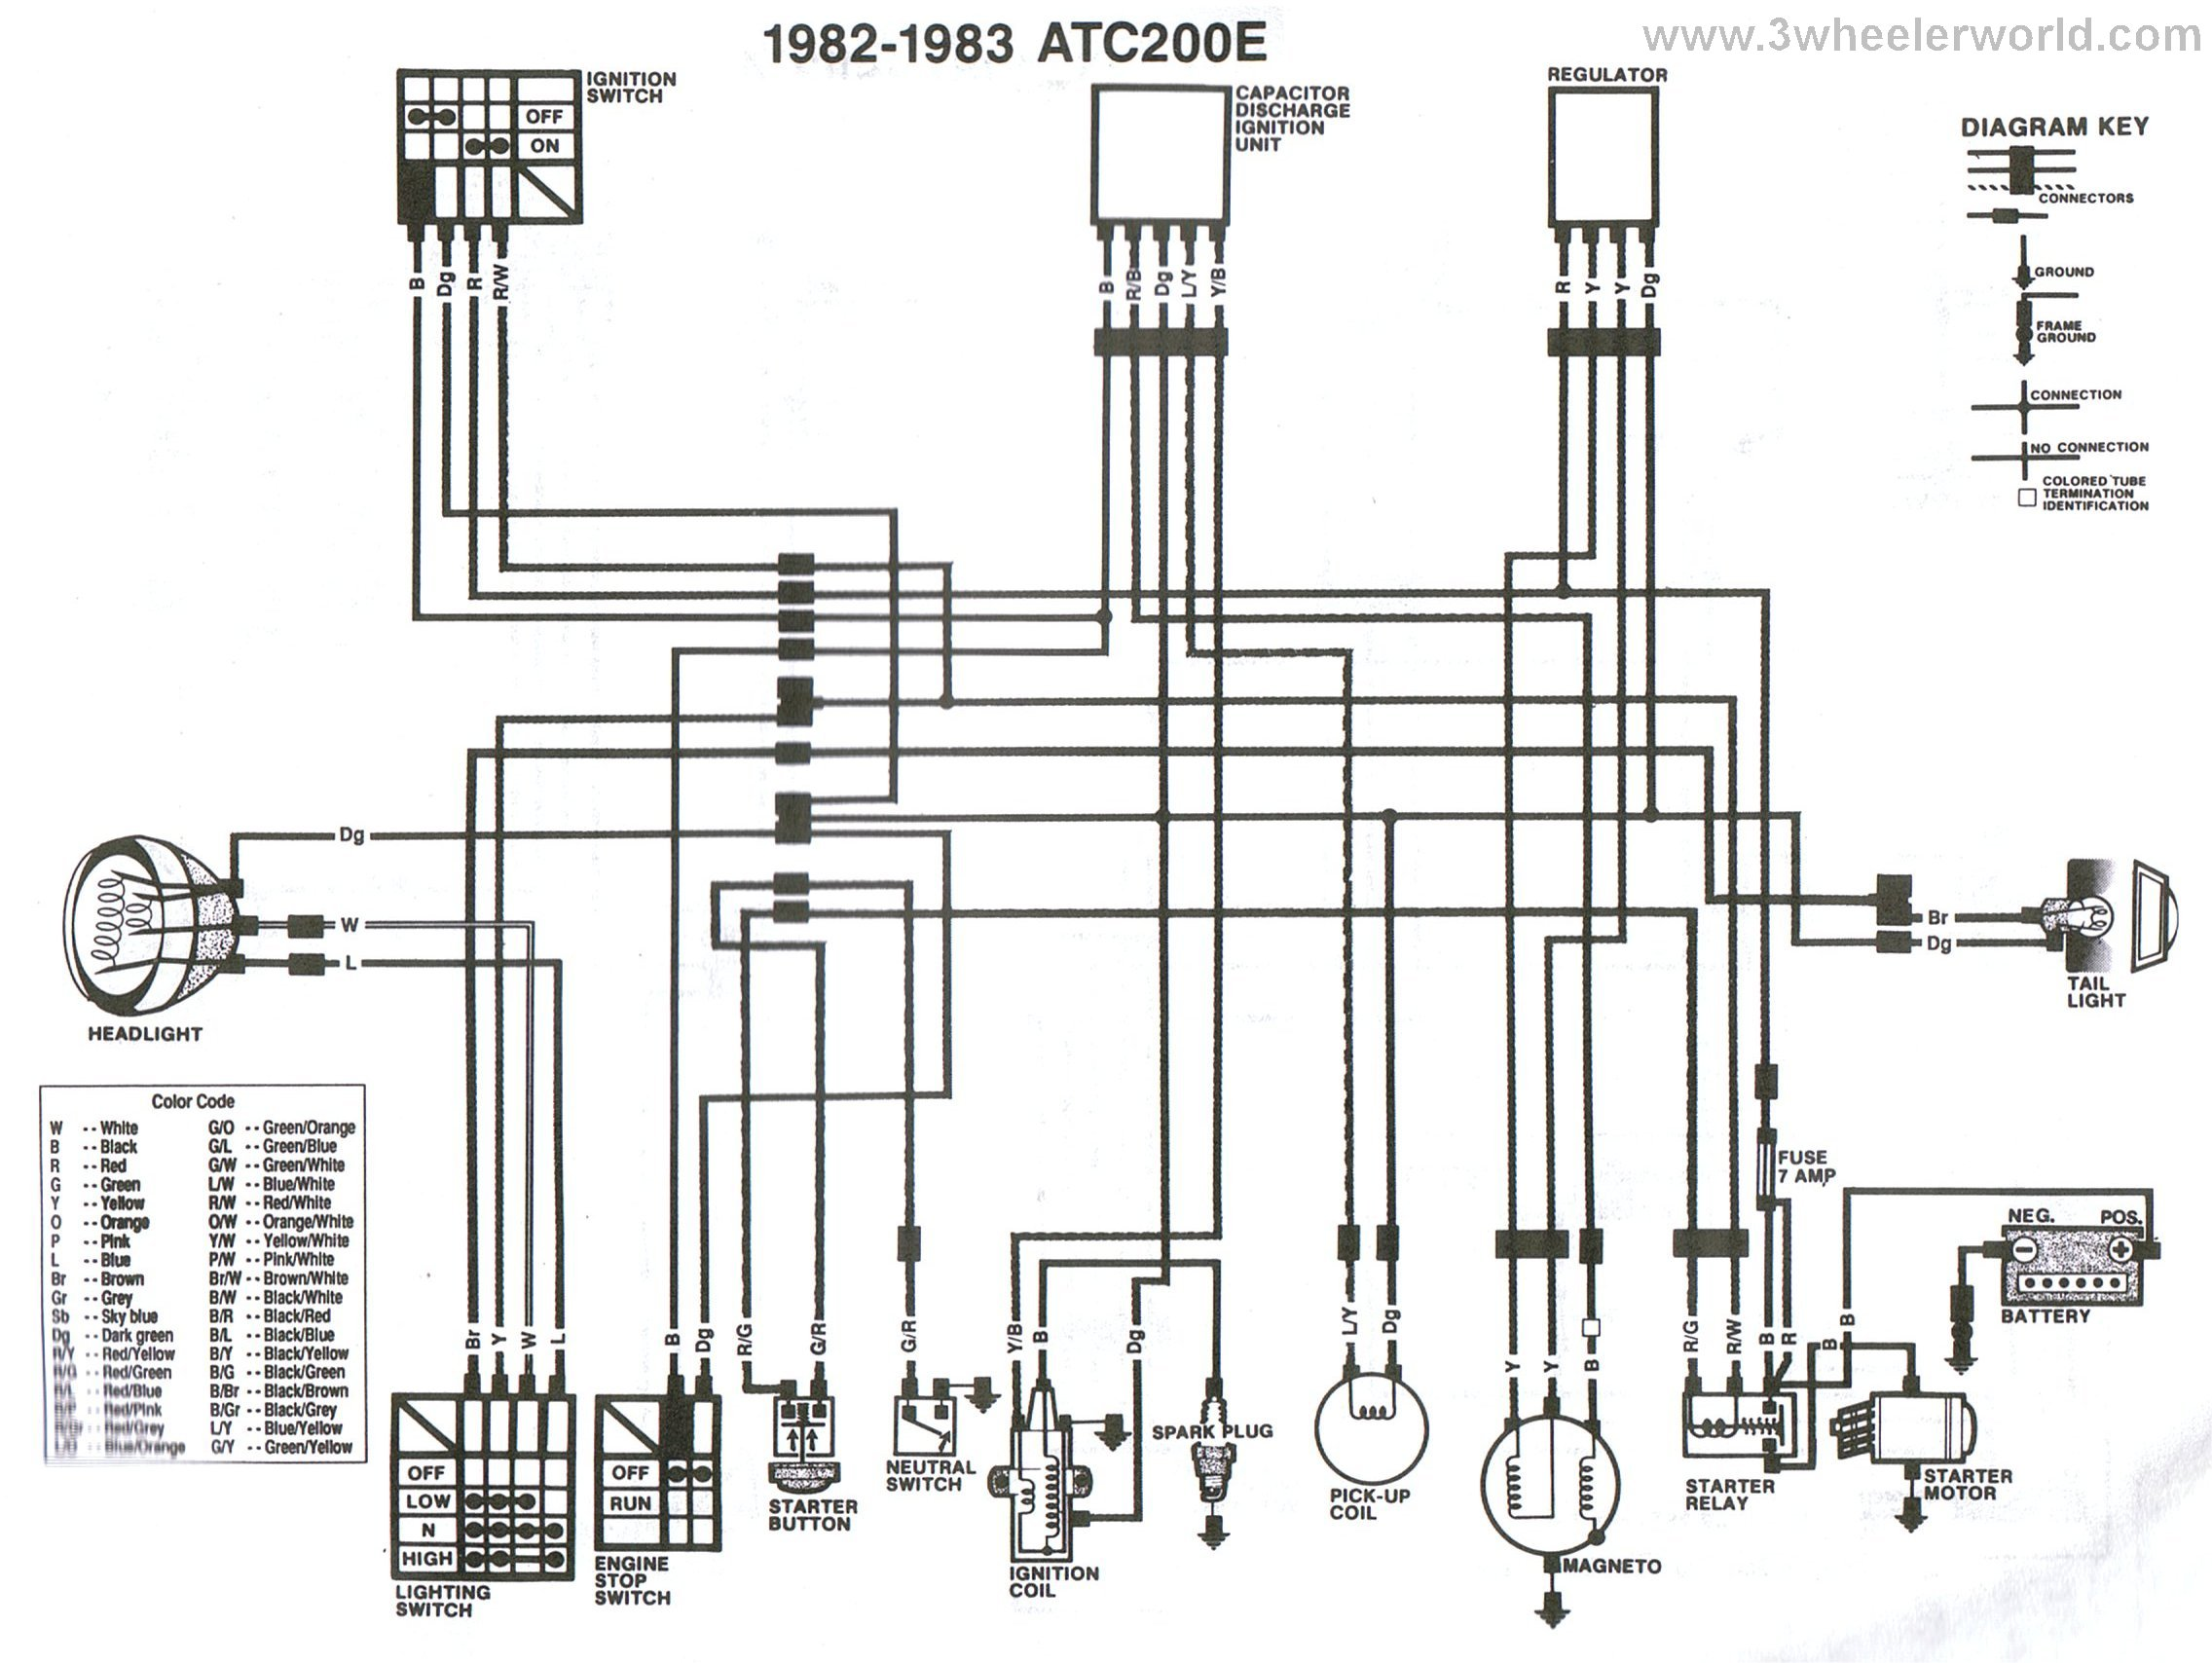 1982 Kawasaki Wiring Diagrams 200 Not Lossing Diagram For K Z Ltd 750 Rh 97 Treatchildtrauma De Mule